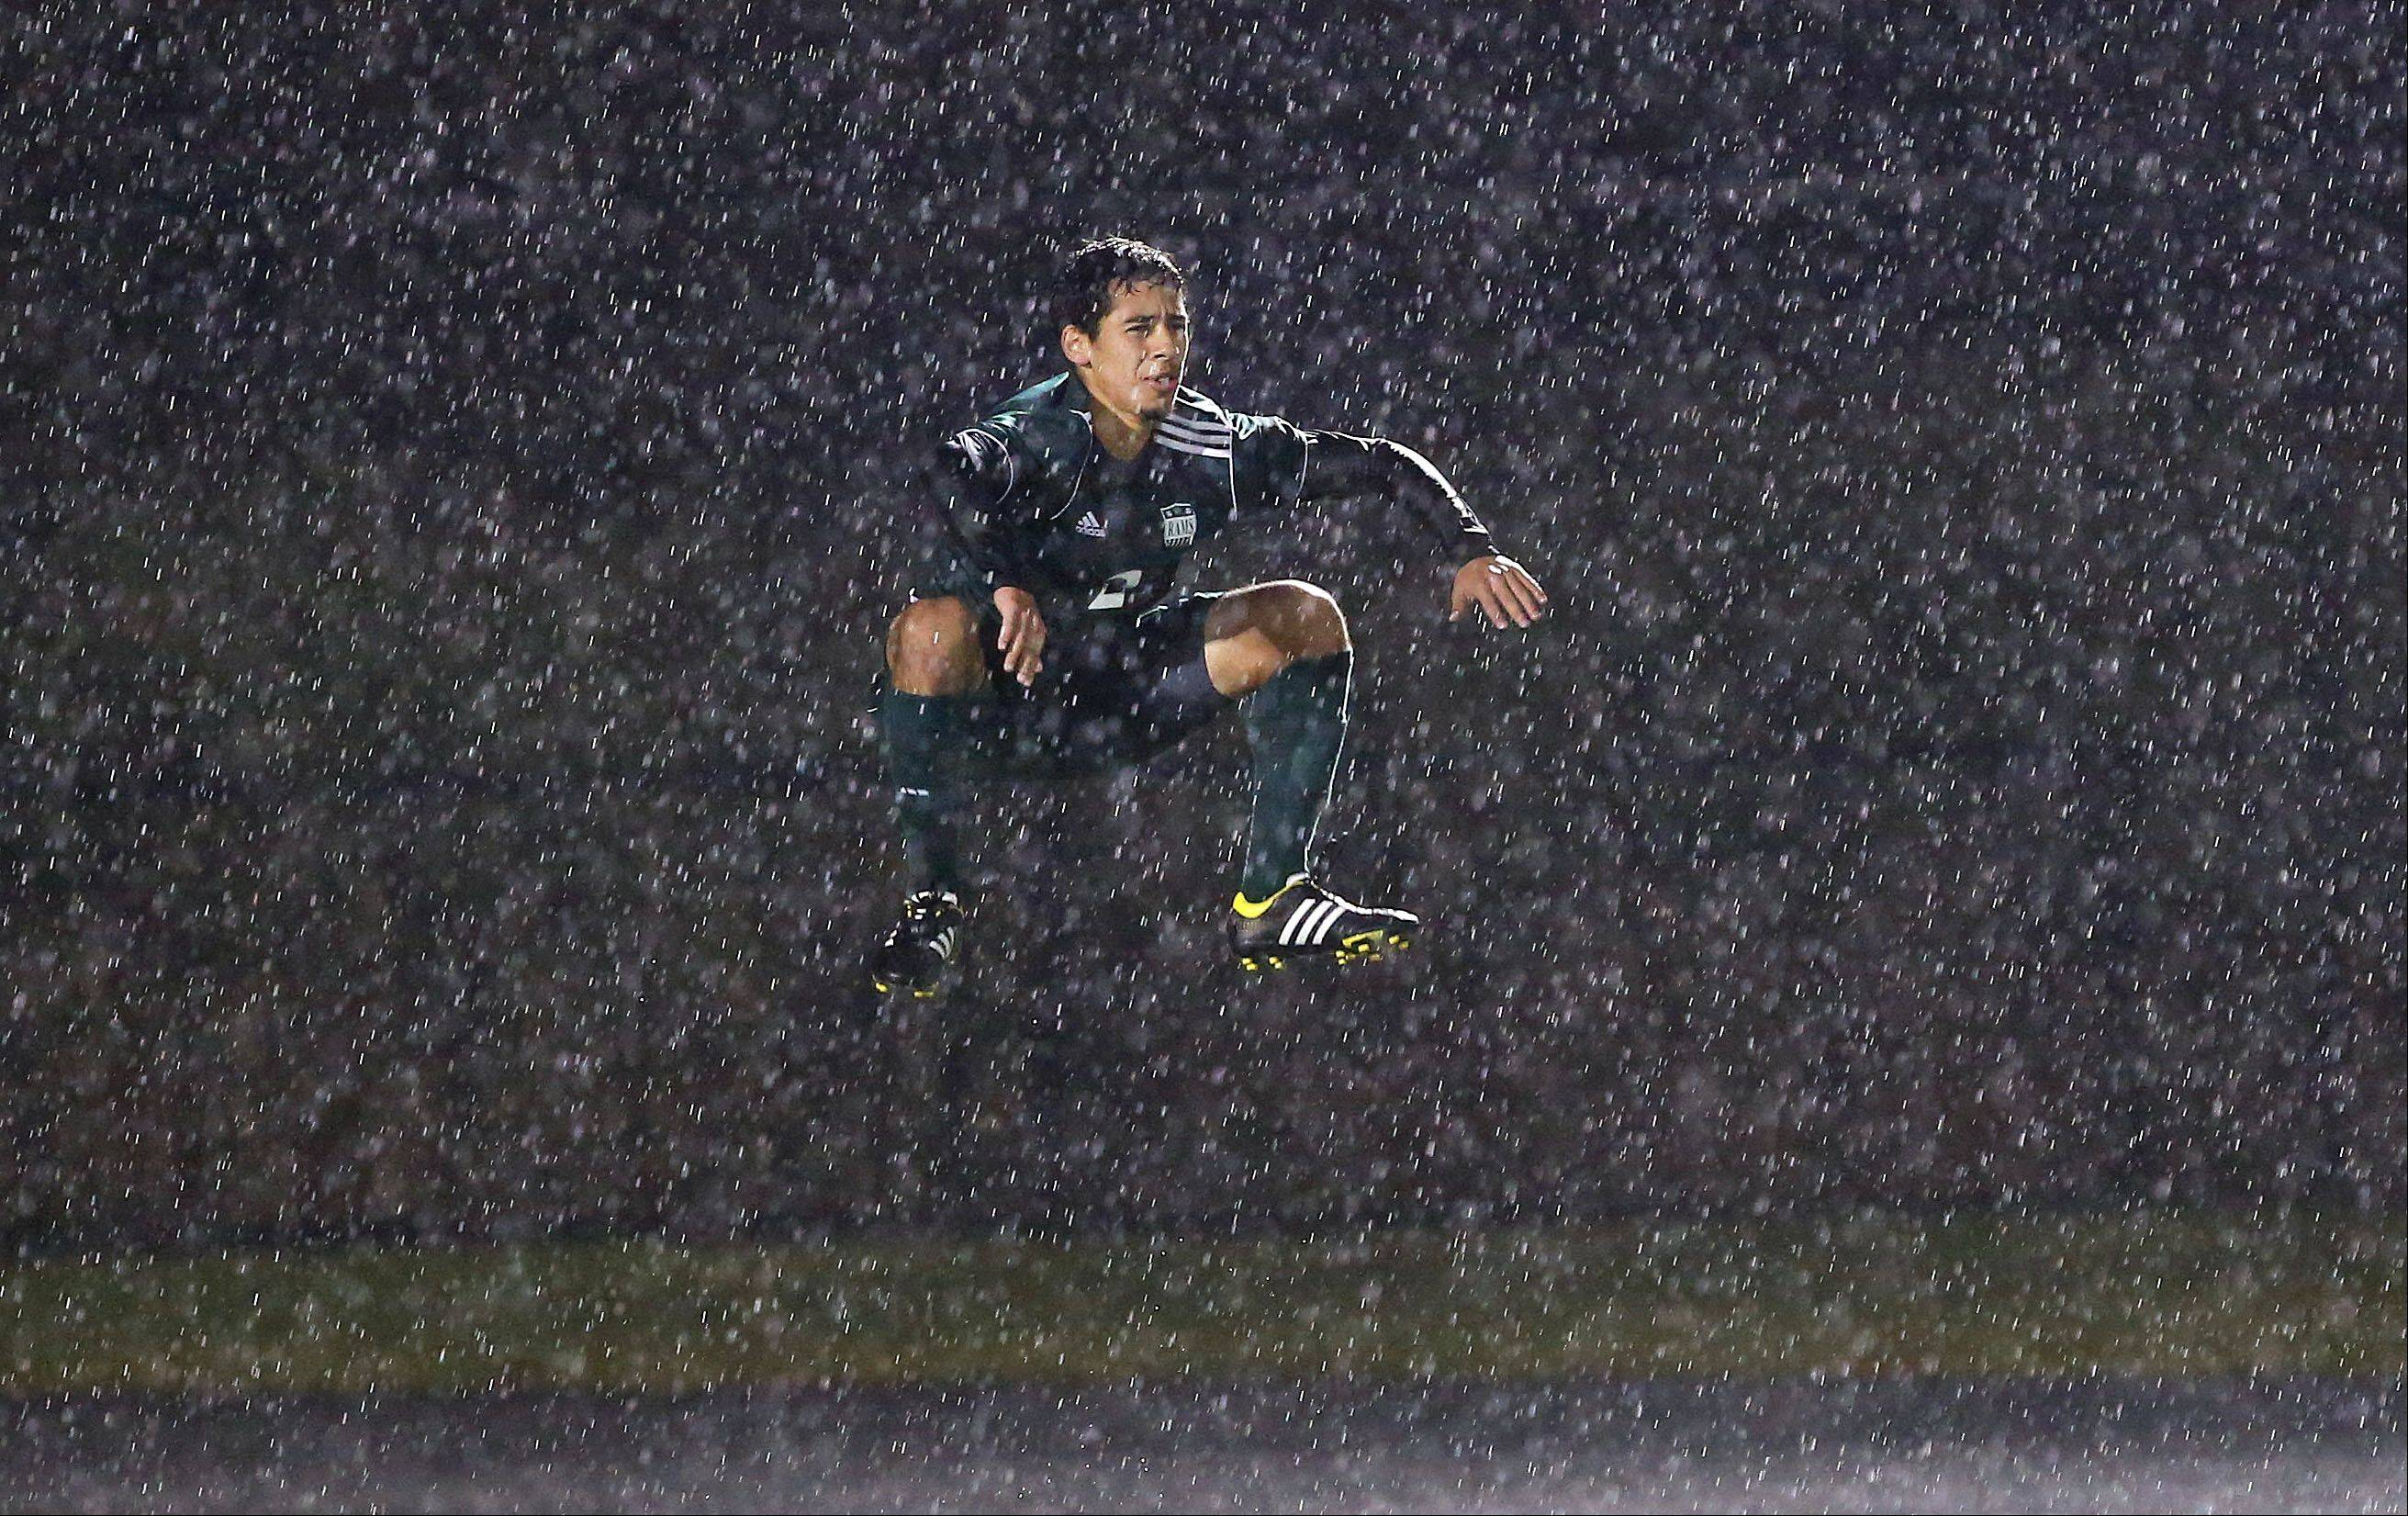 As photojournalists we have to be ready to shoot in any weather condition. This boys soccer matchup between Grayslake Central and Antioch took place in a total downpour. The dark background accentuates the rain as this defender from Grayslake Central tries to stay warm by jumping. This photo was published in the Perspective column in the print edtion.